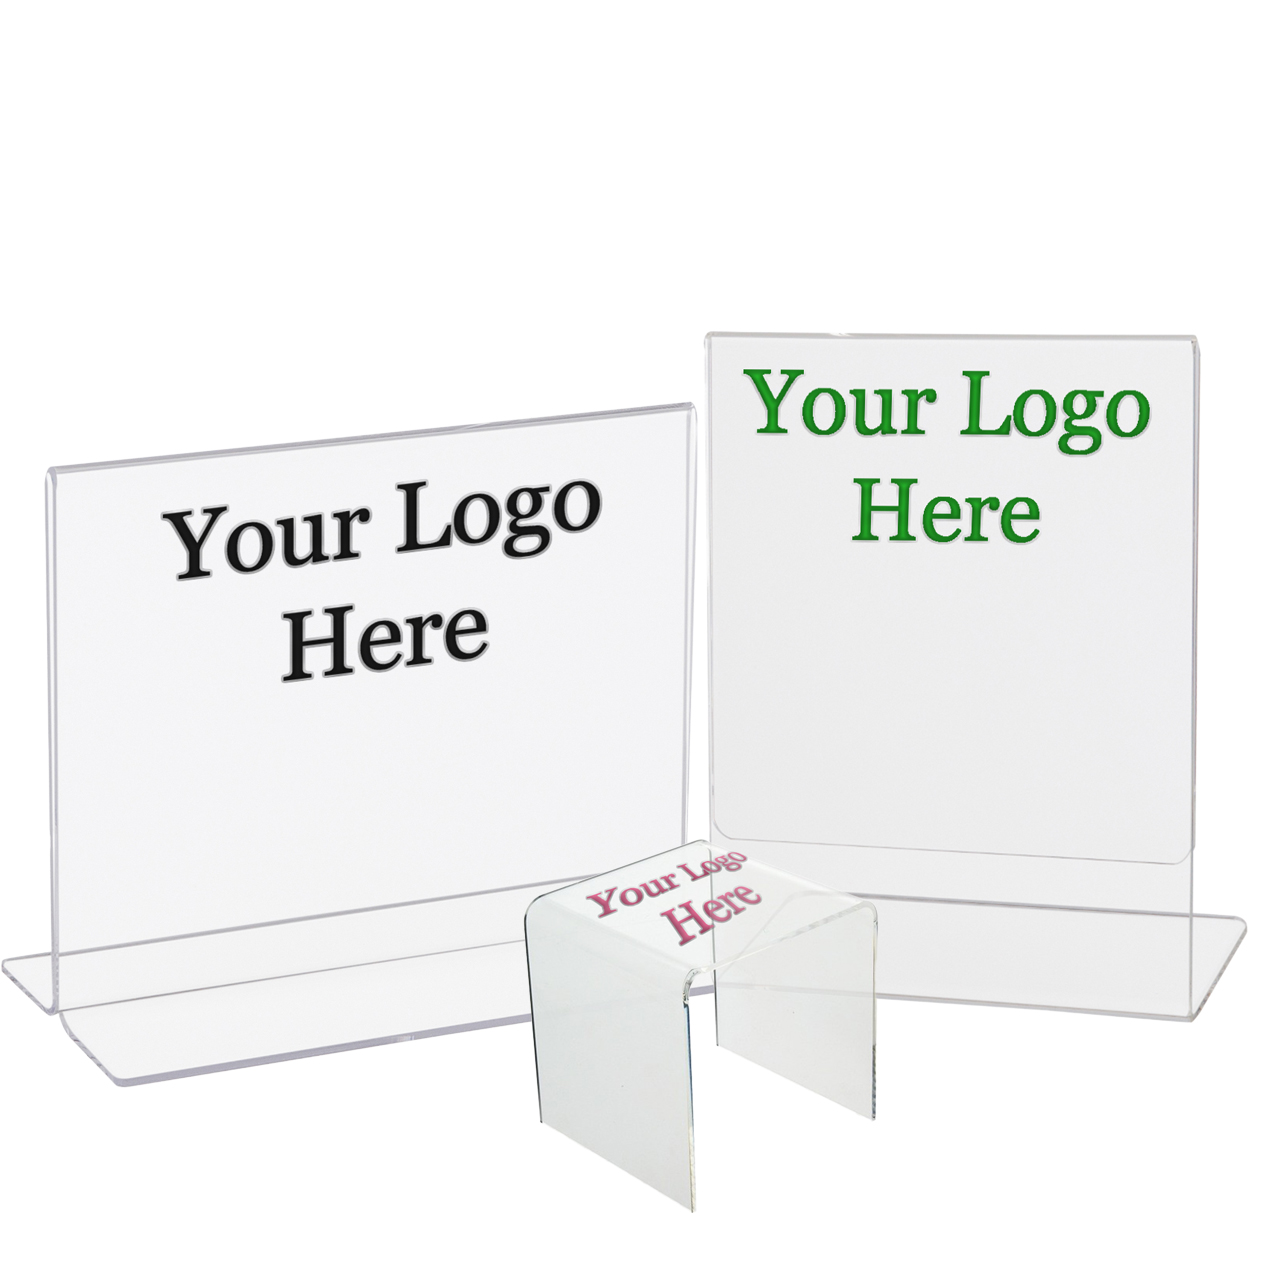 your-logo-here-collection.jpg